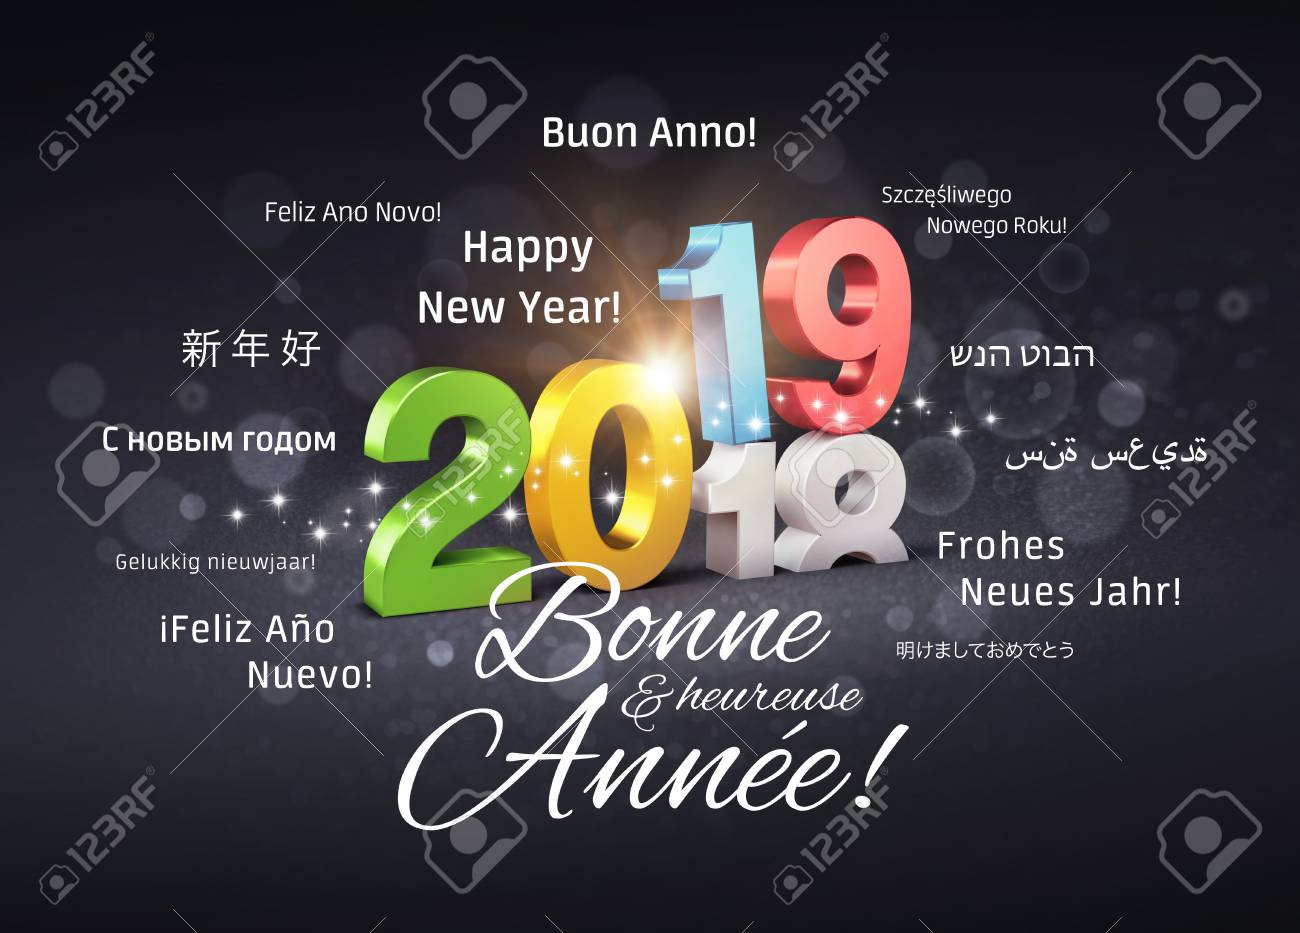 colorful new year 2019 date number above ending year 2018 and greetings in french and foreign